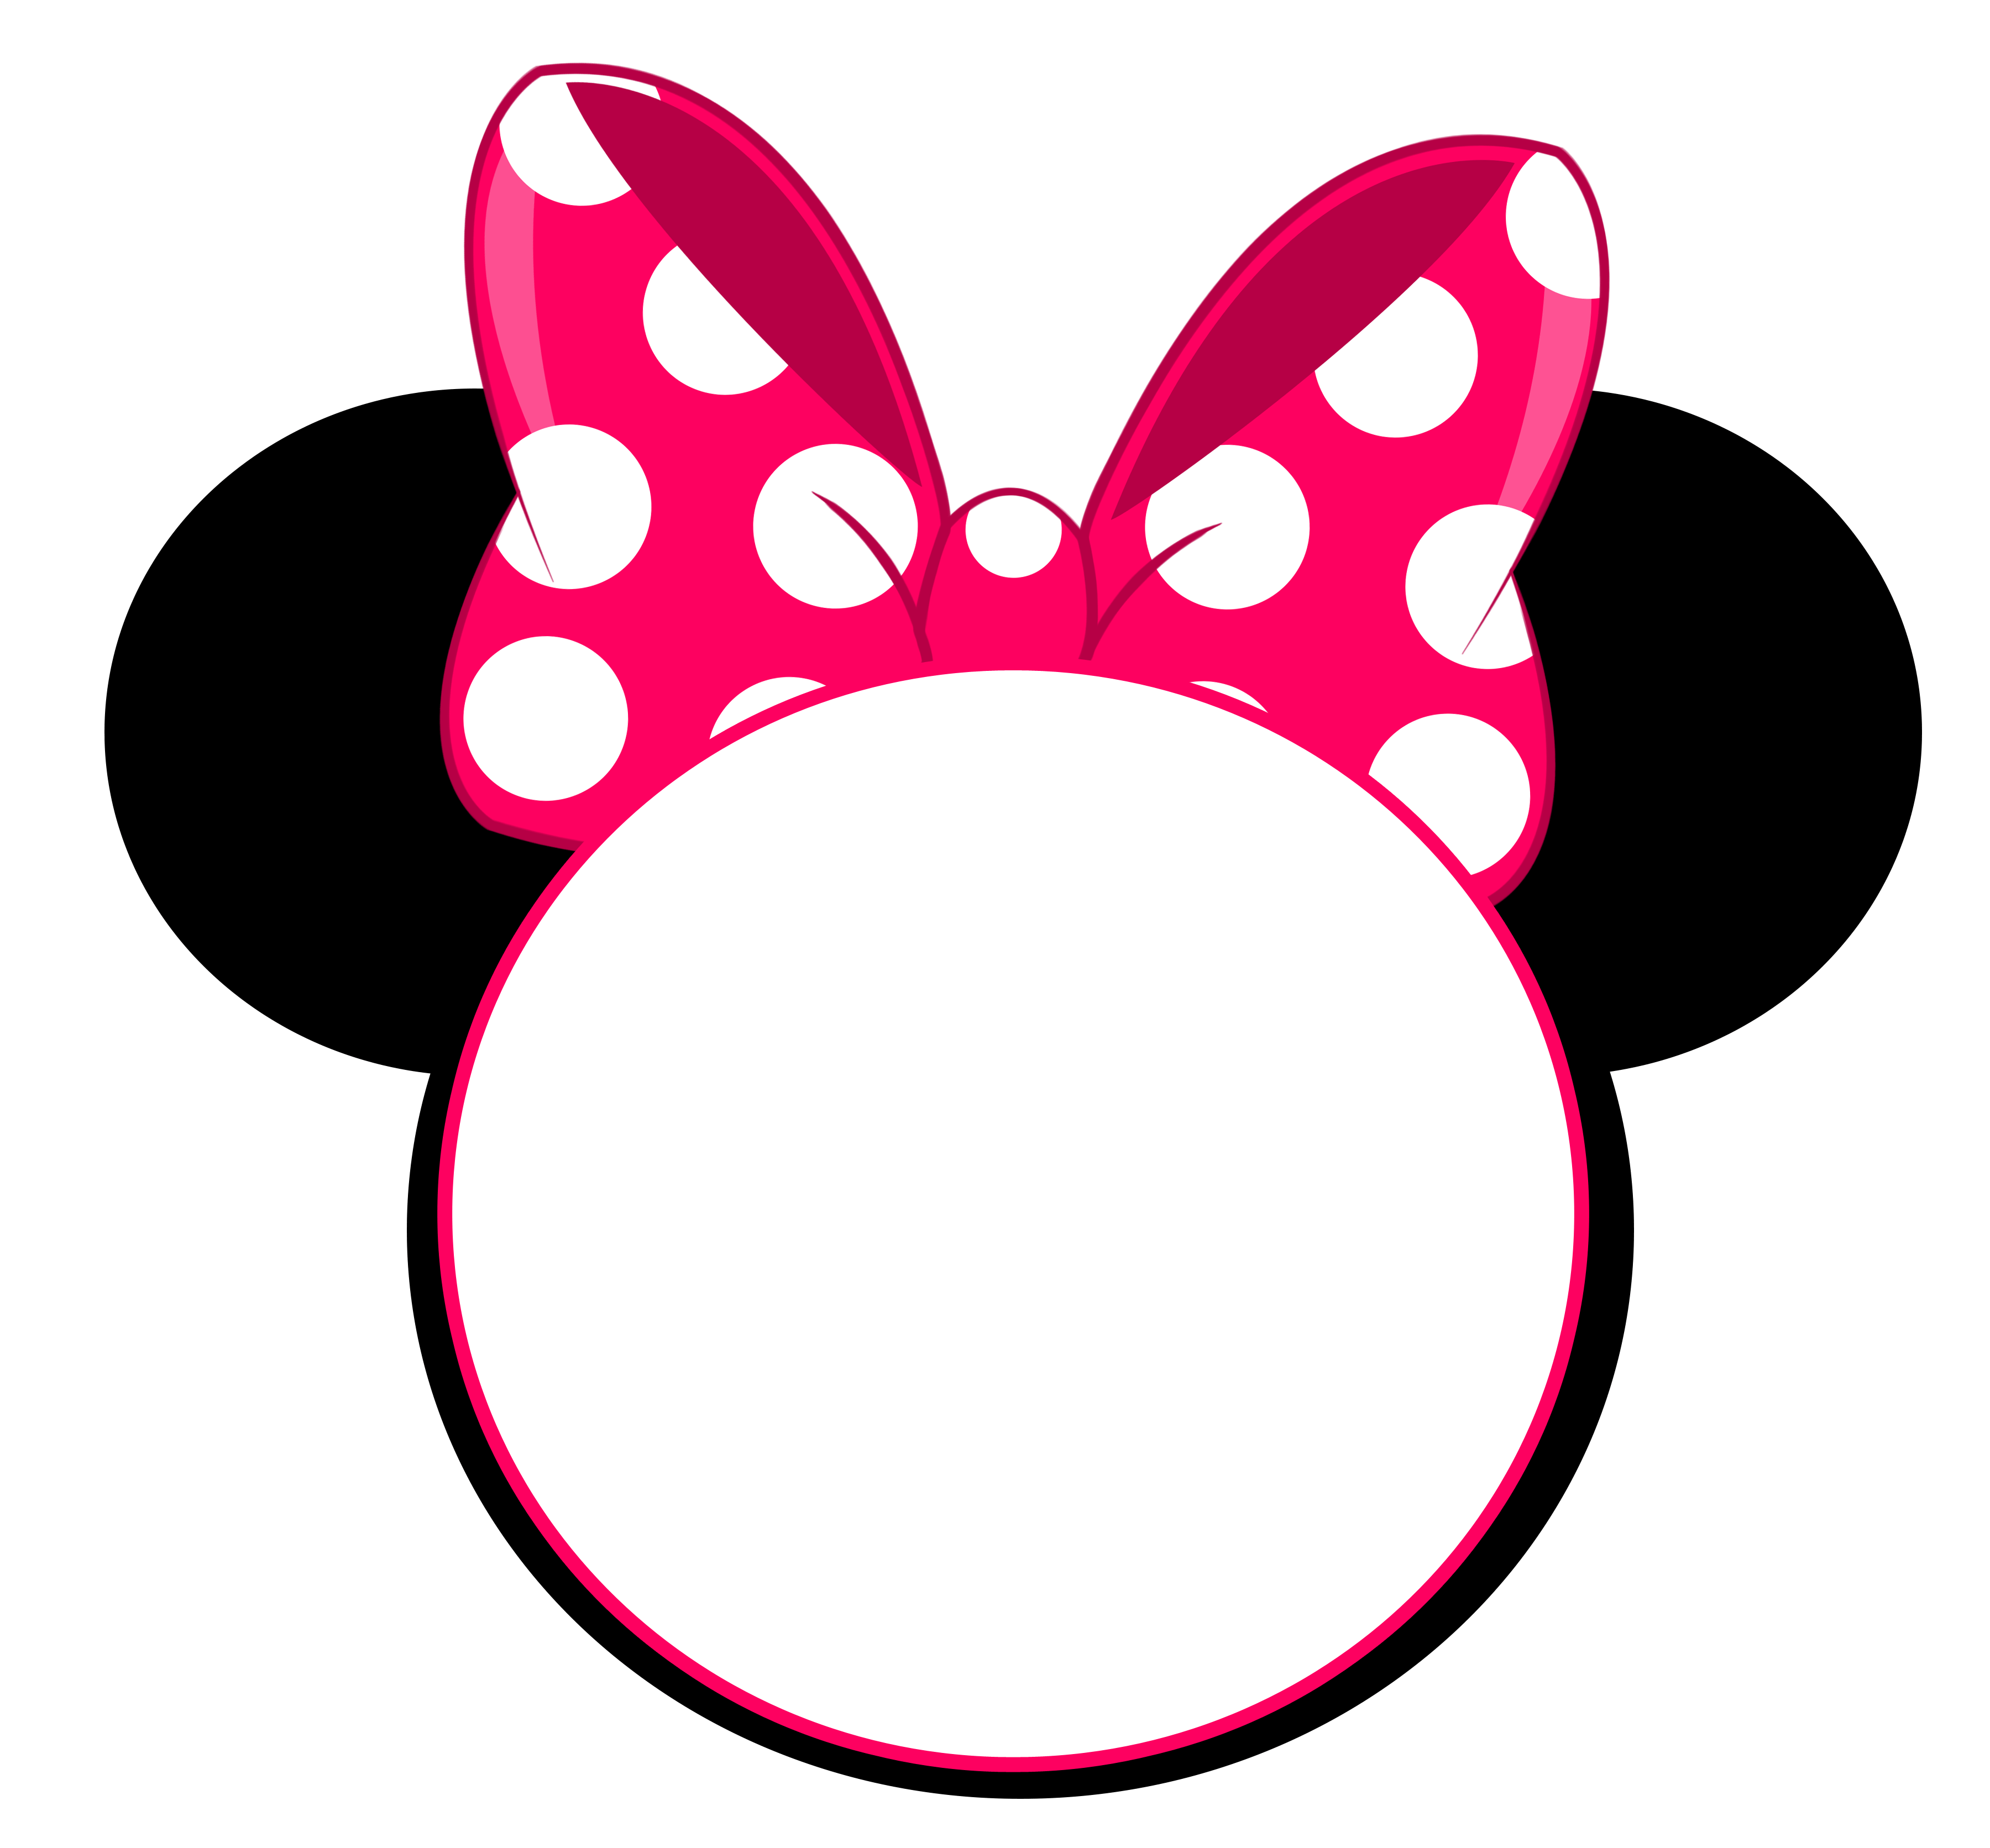 Mice clipart traceable. Free minnie mouse head